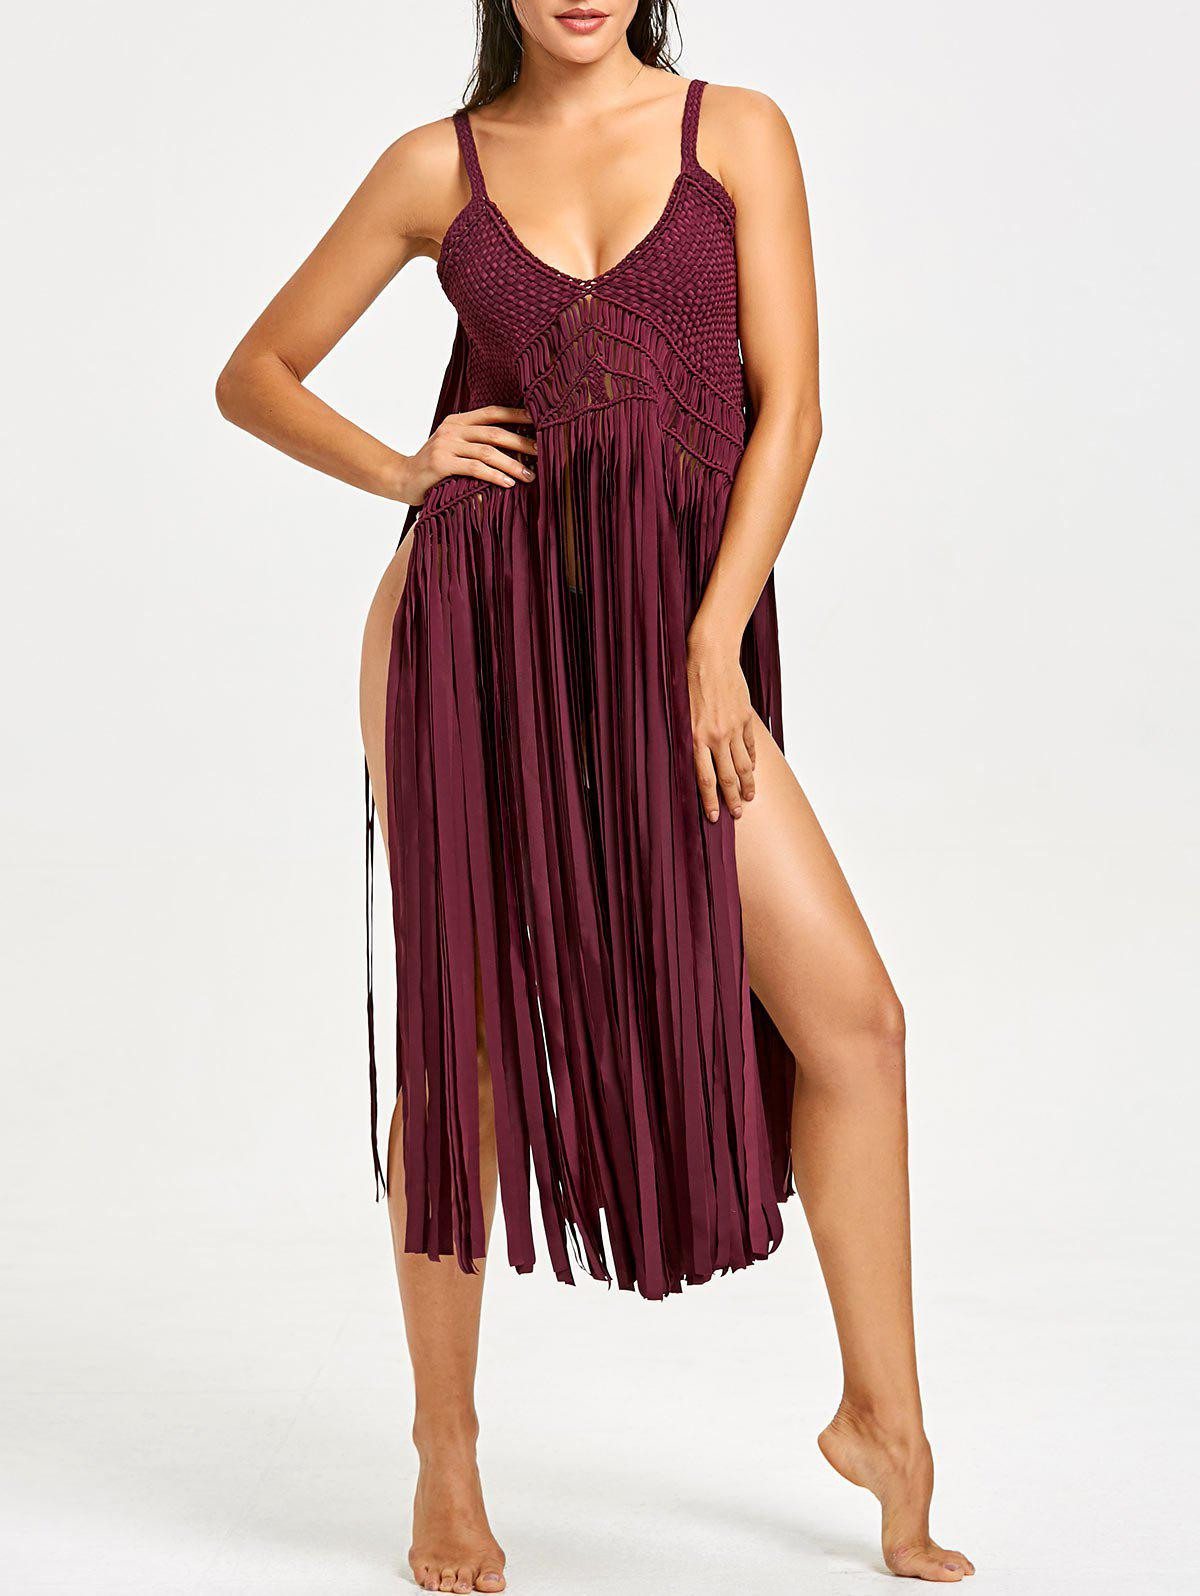 Shops Fringed Crochet Knit Cover-up with G-string